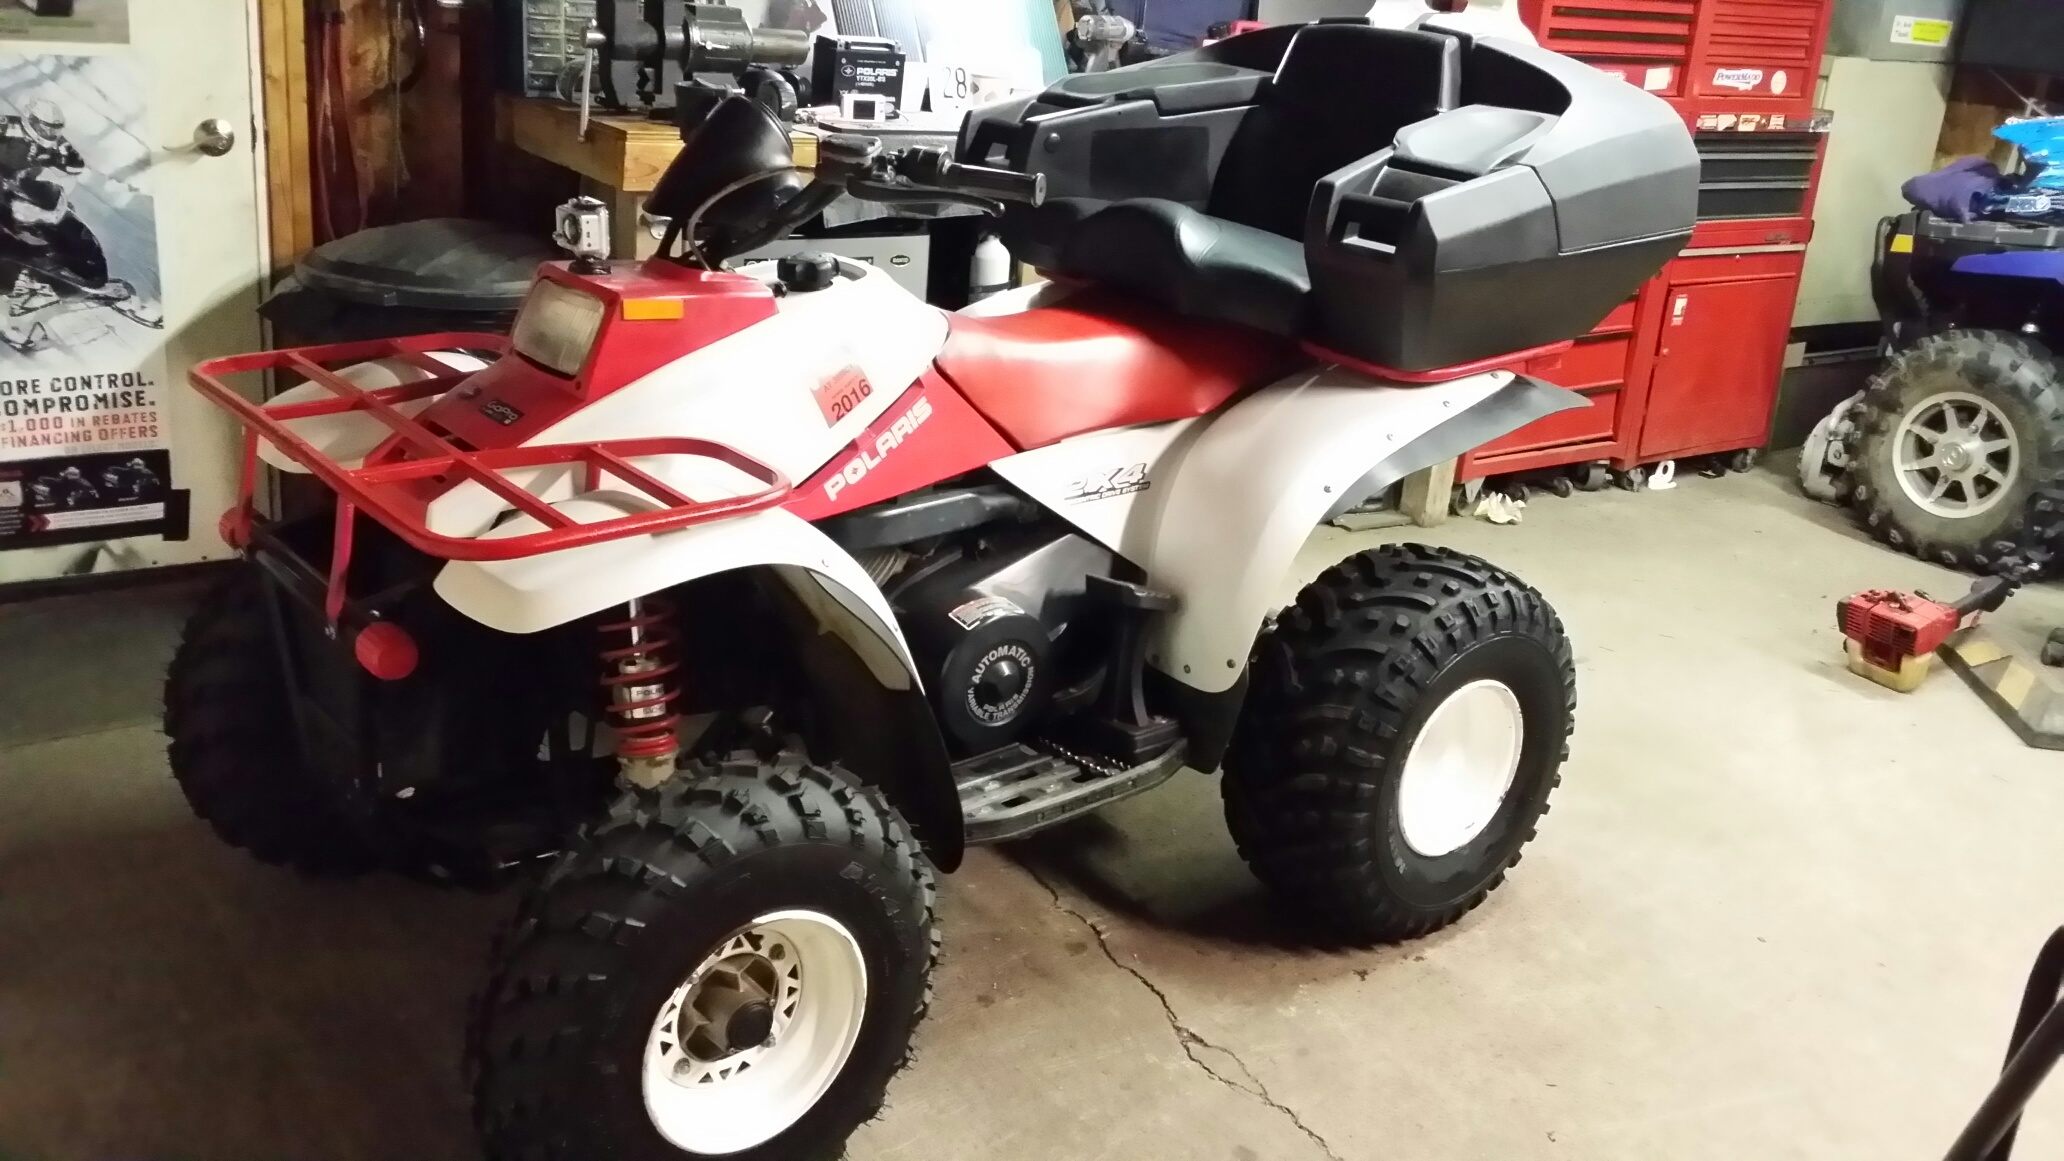 18635d1400416638 finished restore 2001 trail boss 325 20140516_225646_resized finished restore on 2001 trail boss 325 polaris atv forum 2001 polaris 325 wiring diagram at honlapkeszites.co